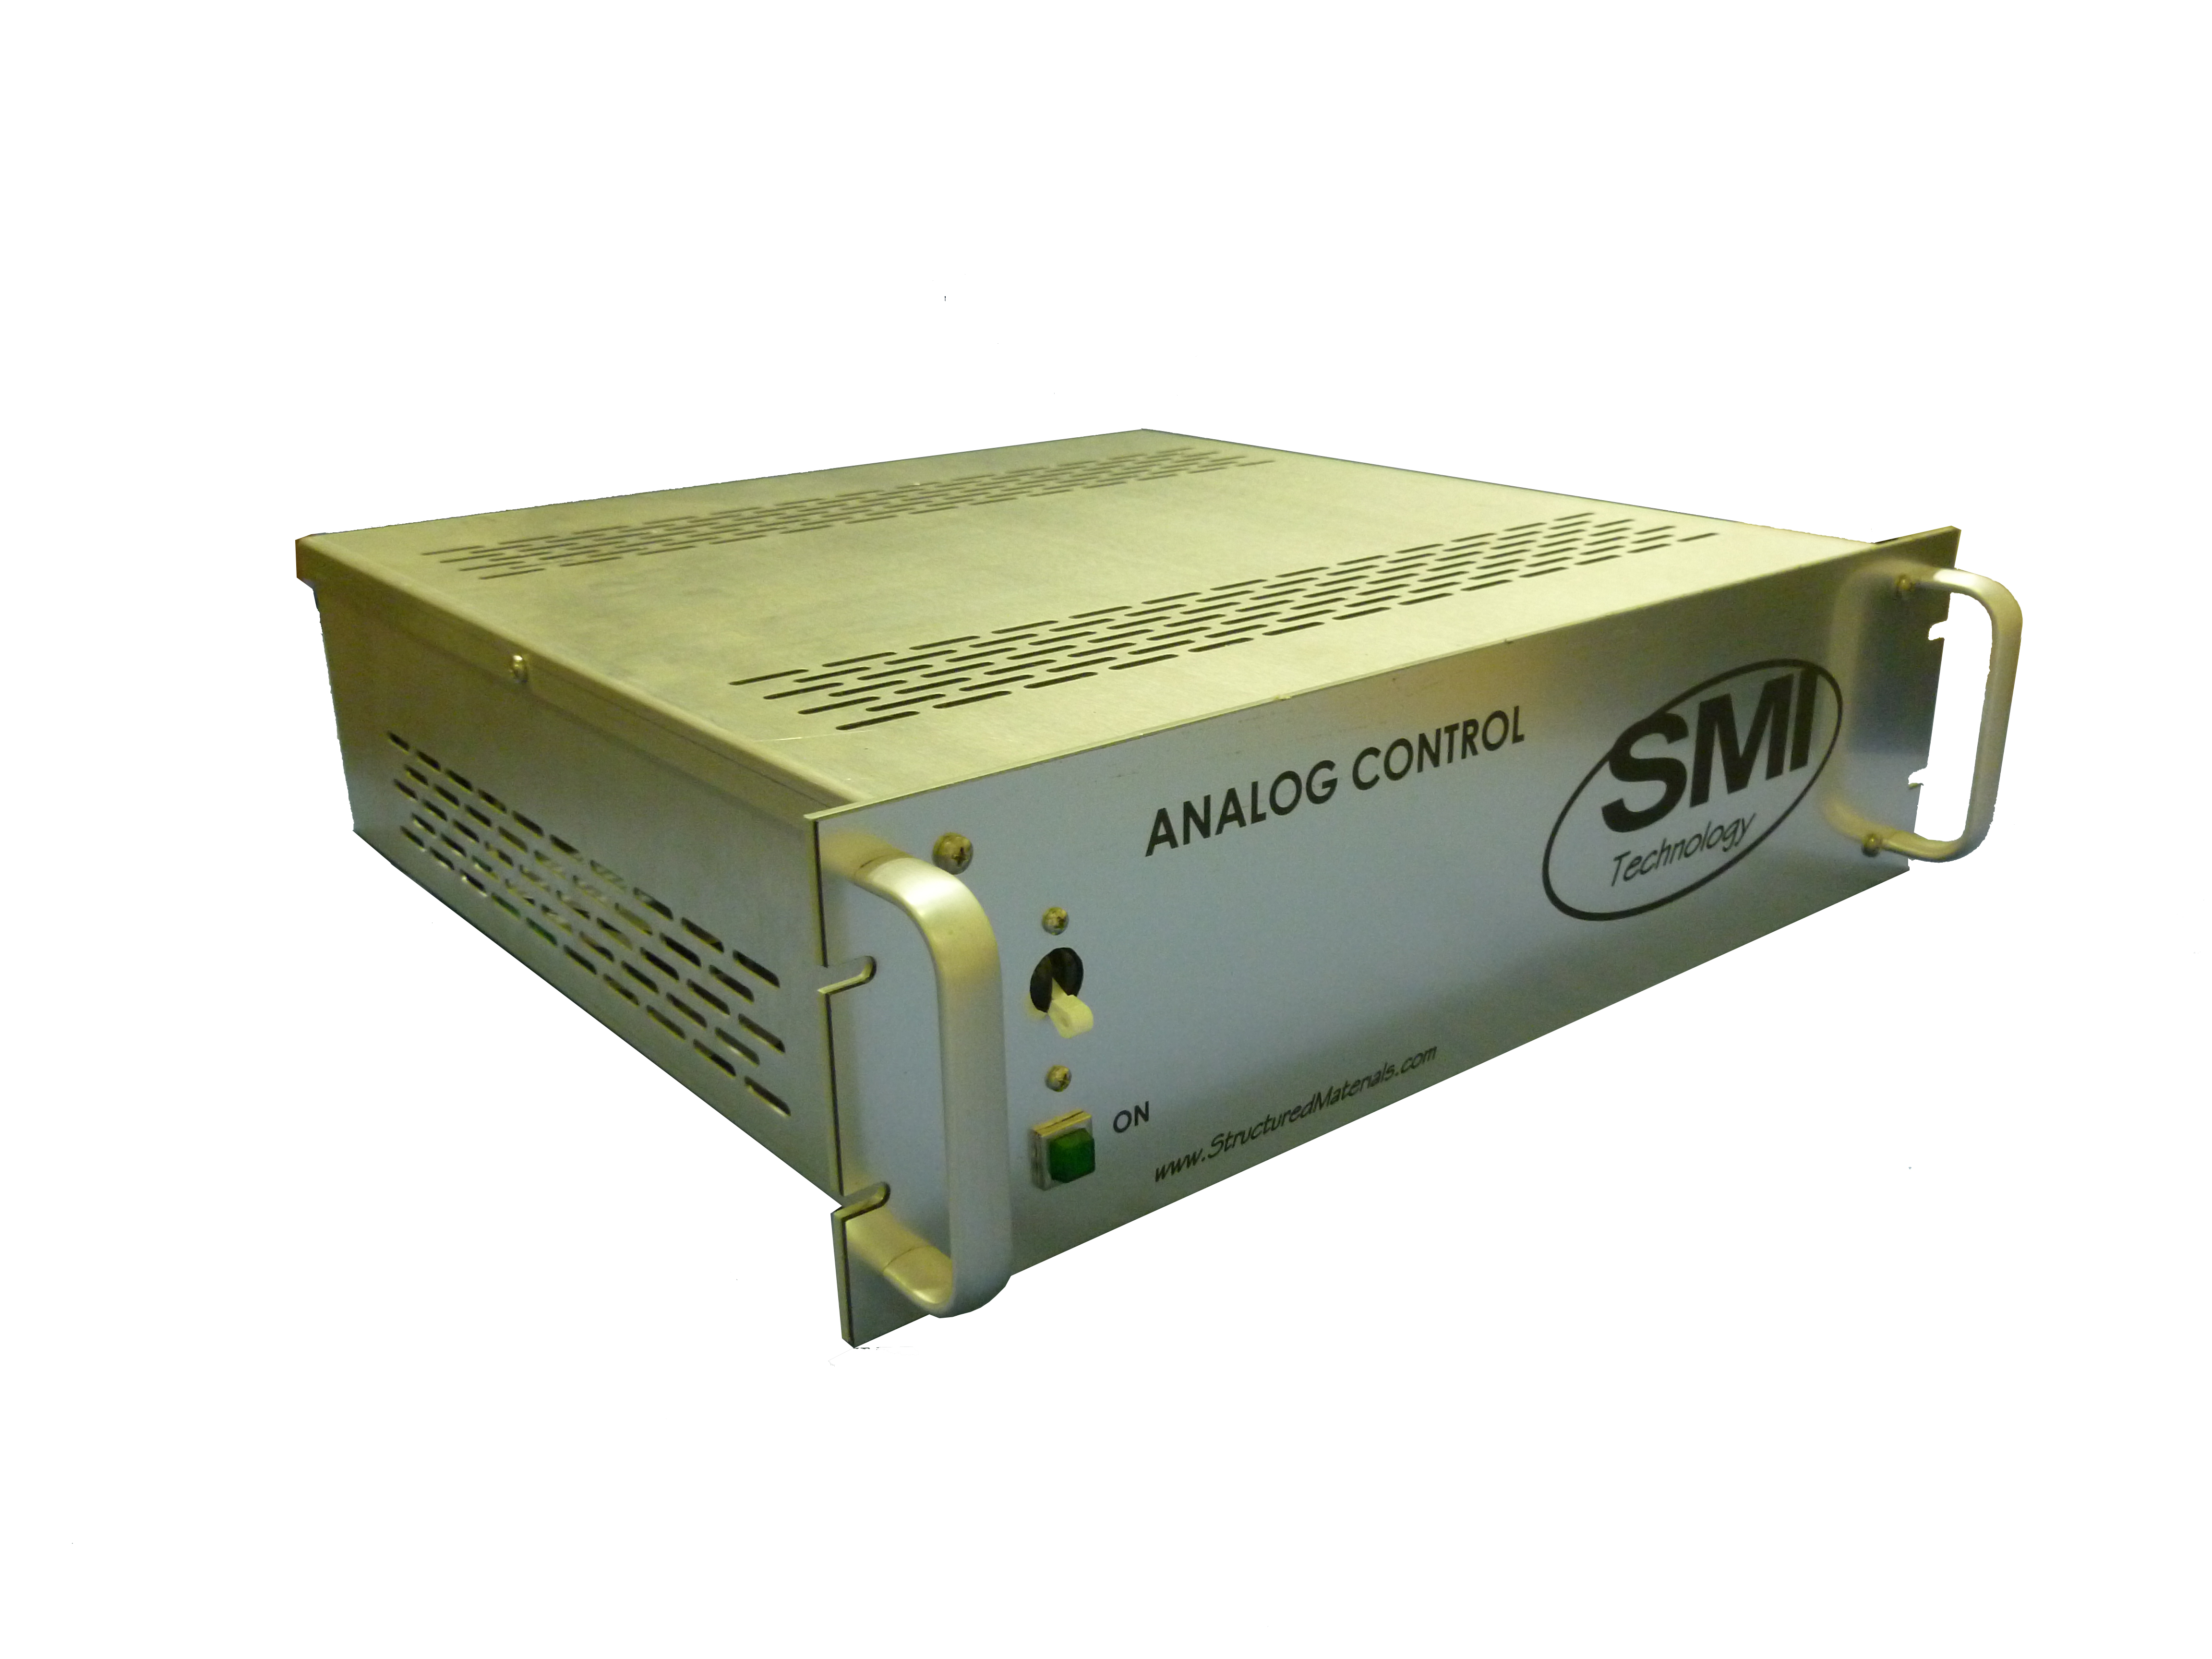 Analog Control Box Iso SMI